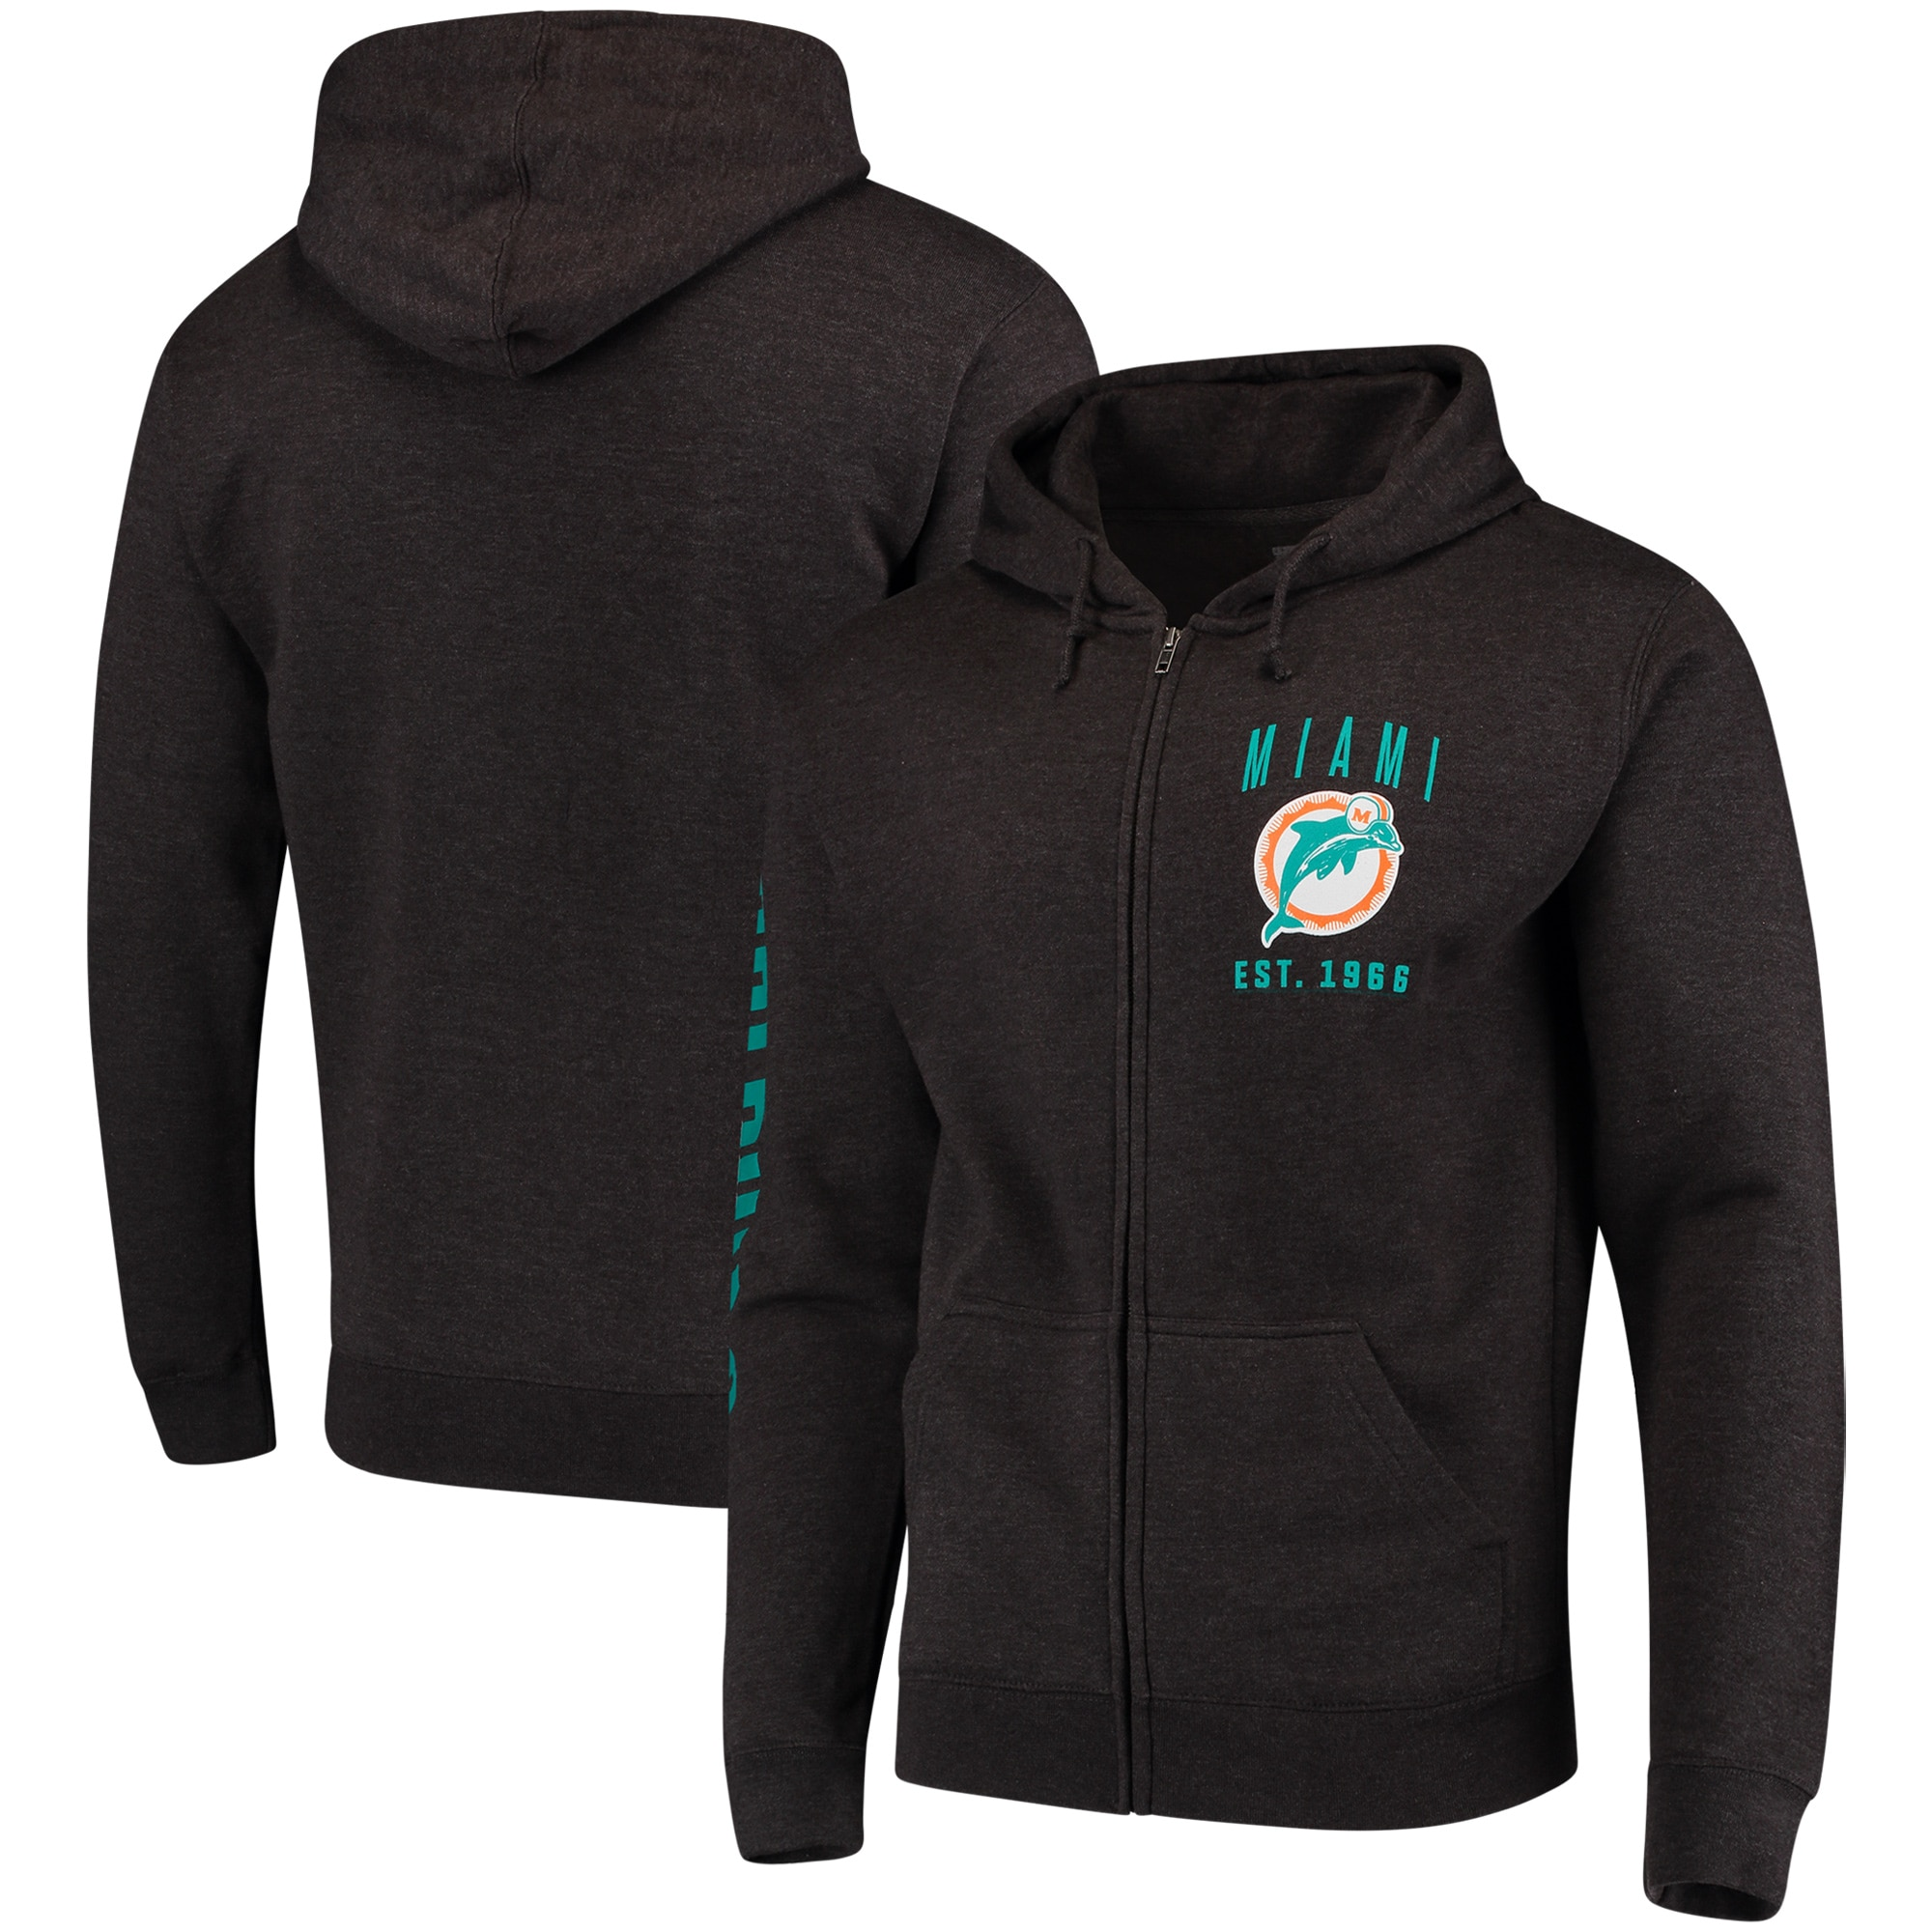 Miami Dolphins Retro Full-Zip Hoodie - Heathered Charcoal